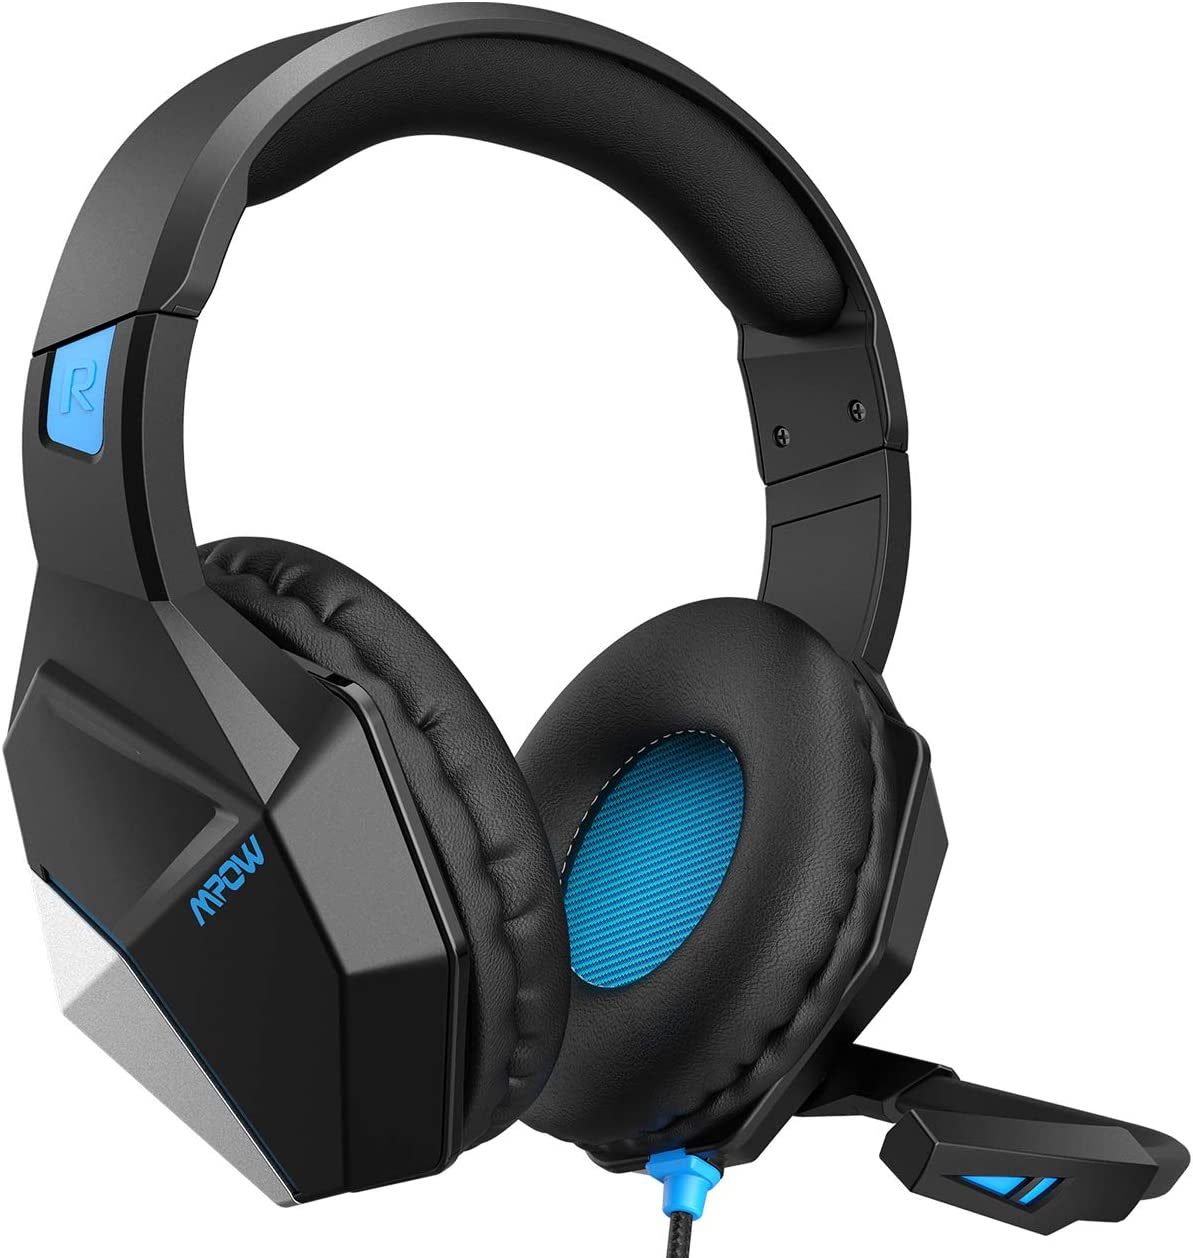 Etc Laptop Compatible with PC Stereo Gaming Headset 3D Surround Sound Comfort Noise Reduction Over Ear Headphones with Mic /& LED Light PS4